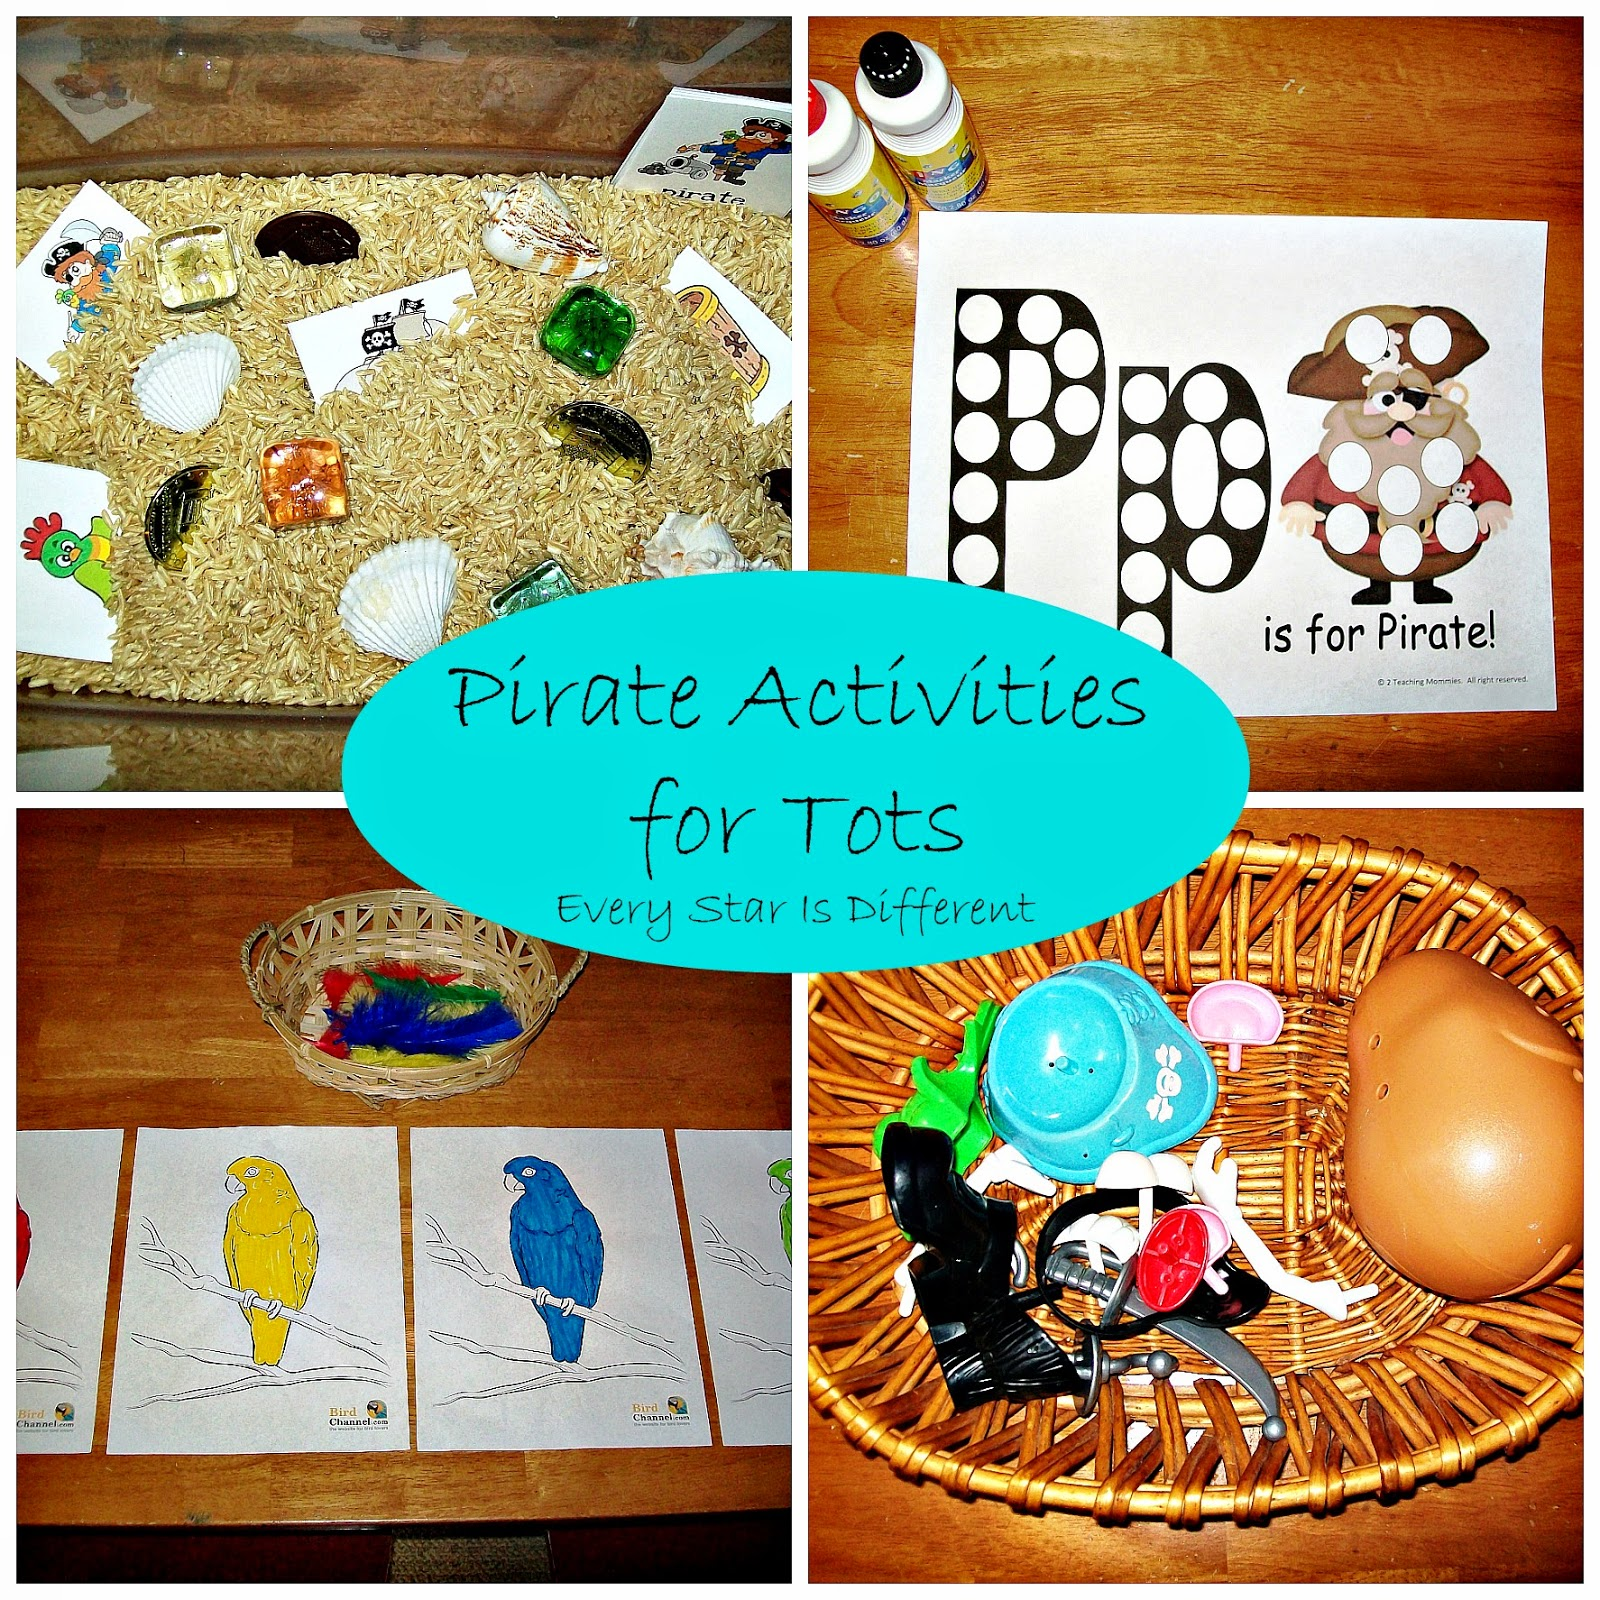 Pirate Activities for Tots